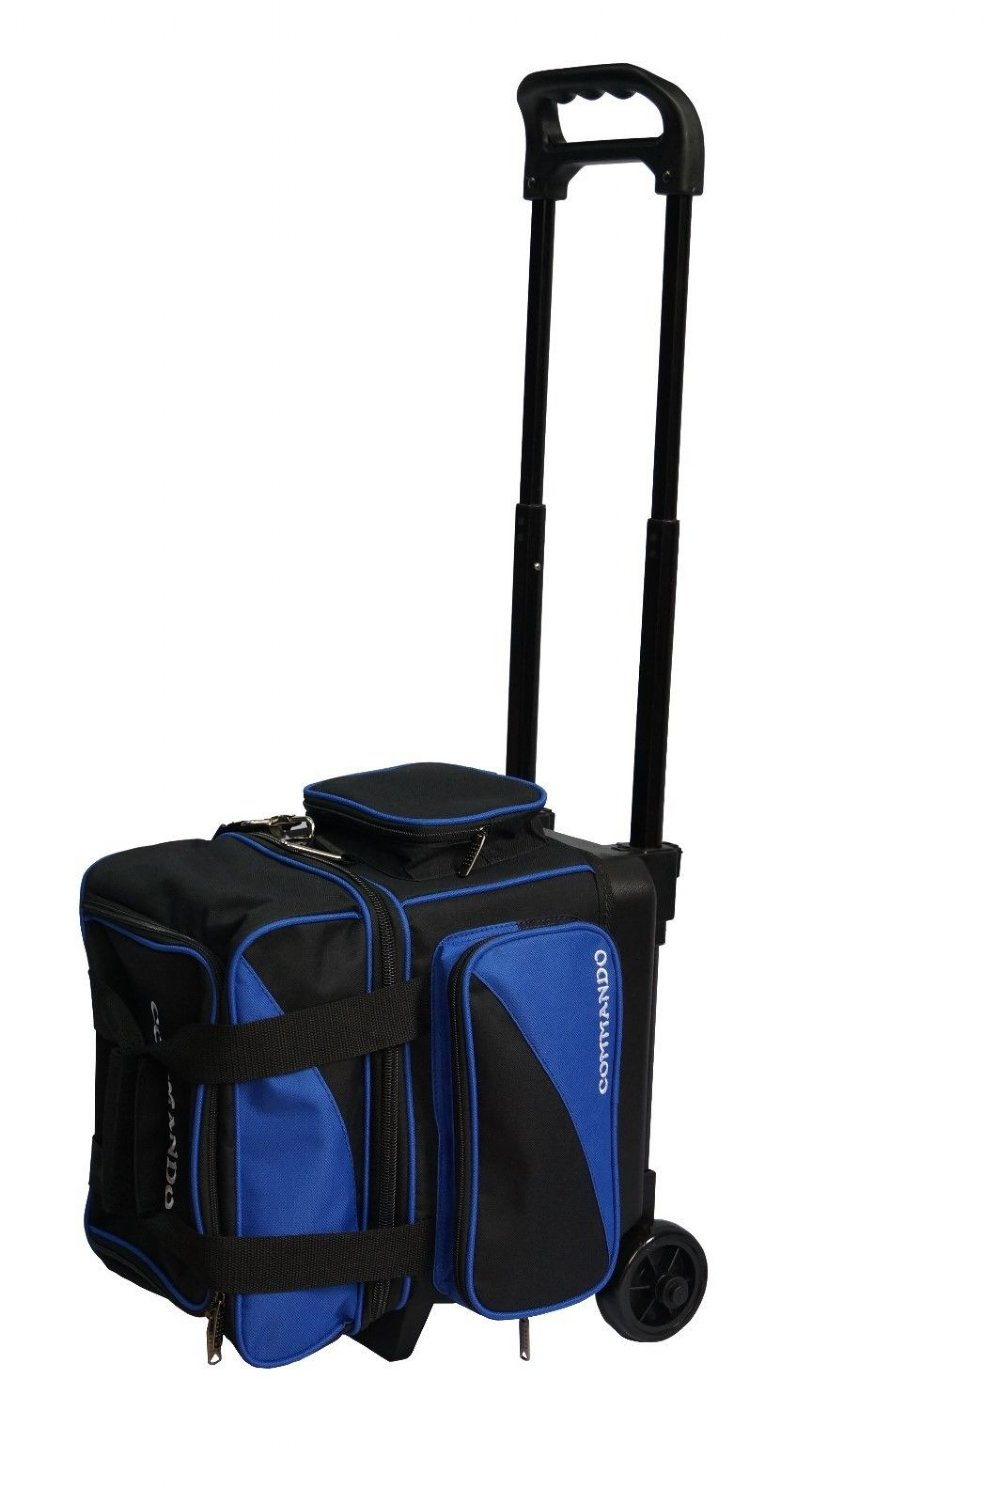 Single Roller Bowling Ball Bag In Blue